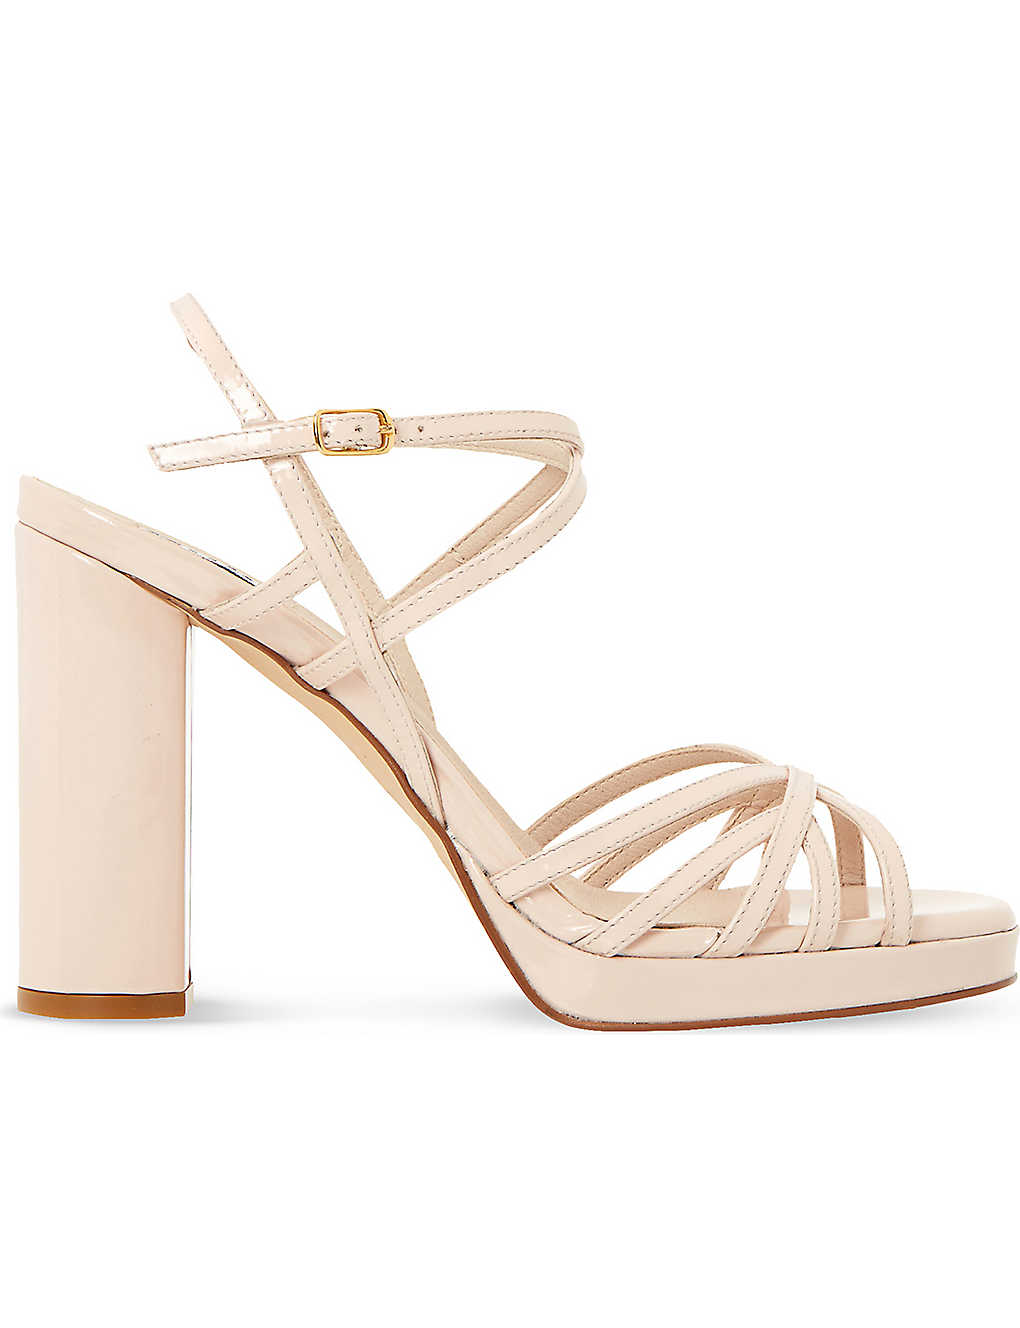 225115a2533 ... Magdalane patent-leather block heel sandals zoom ...